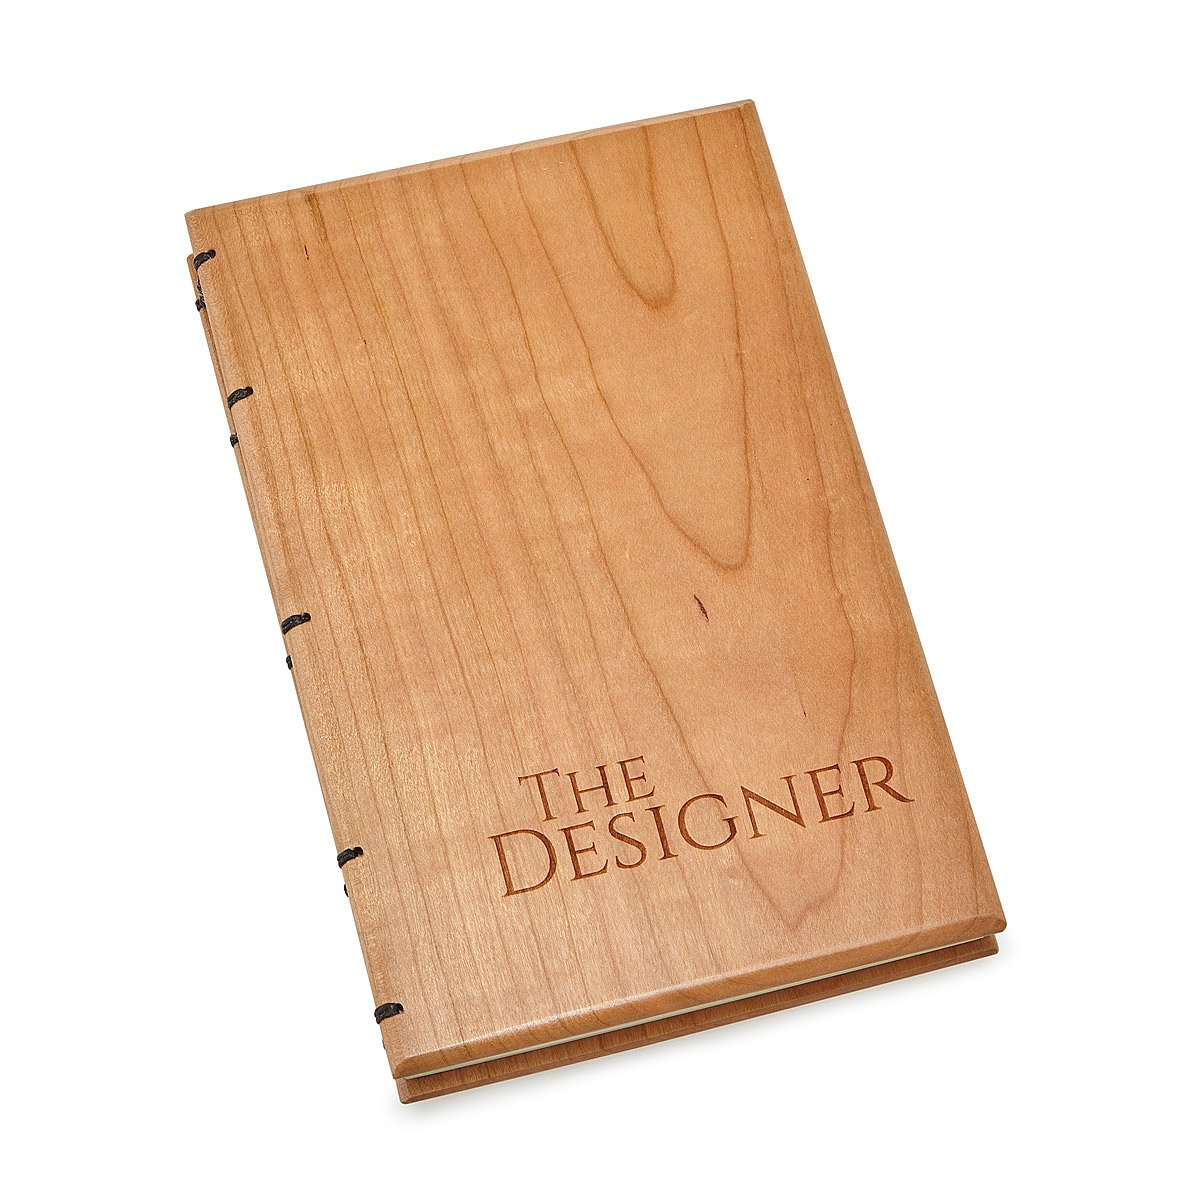 Heirloom Designer Journal